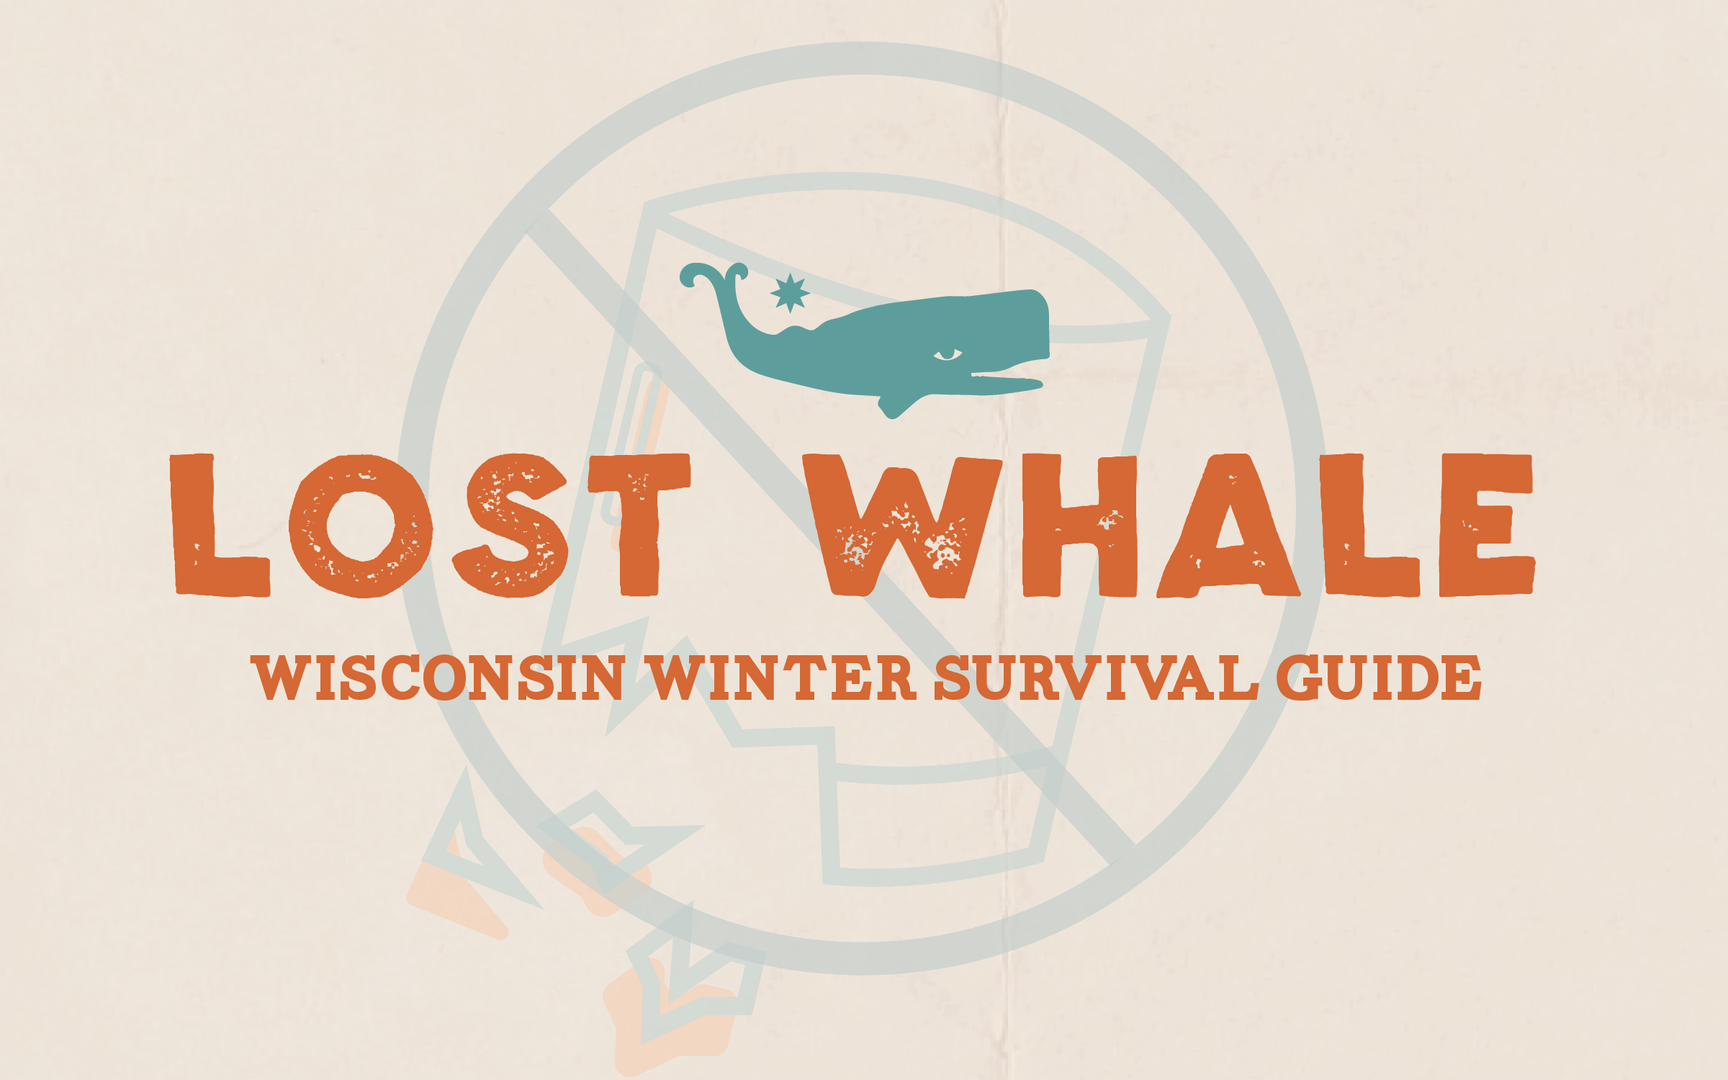 Lost Whale Survival Guide Menu